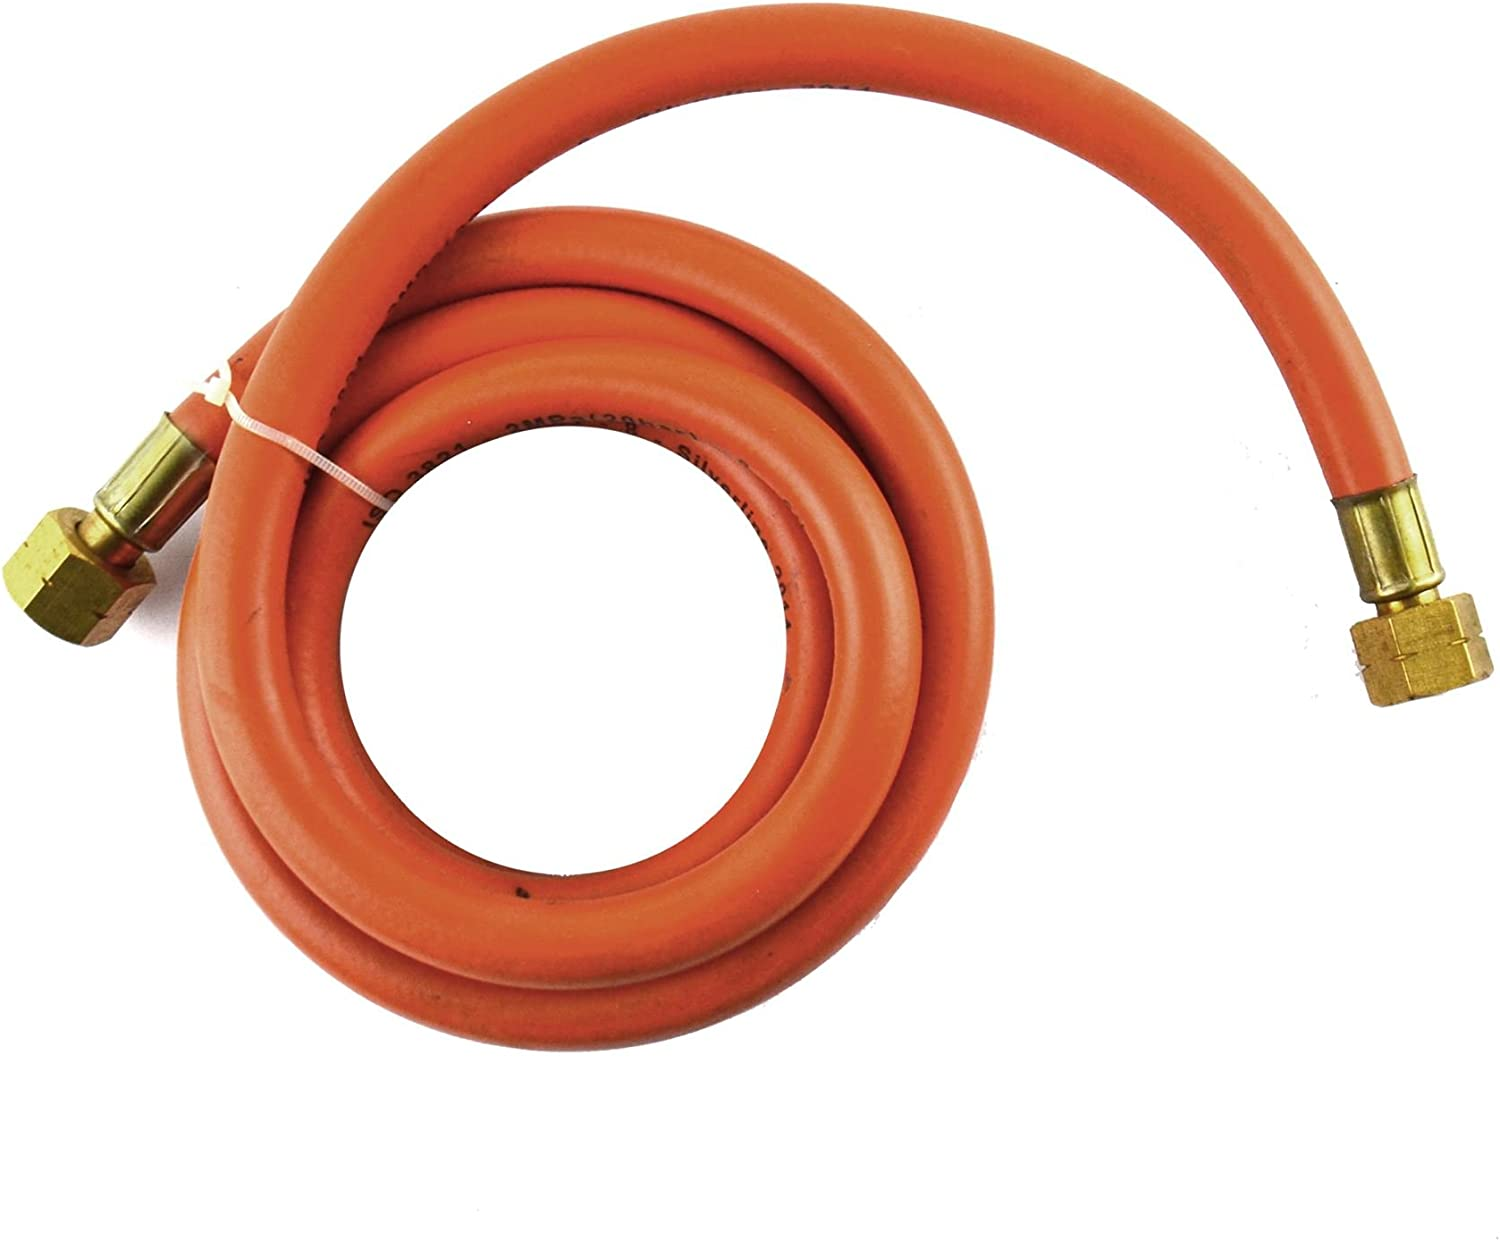 2m Propane Gas Hose Industry No. 1 Female Connector For Translated 8mm Bore Regulators Tor